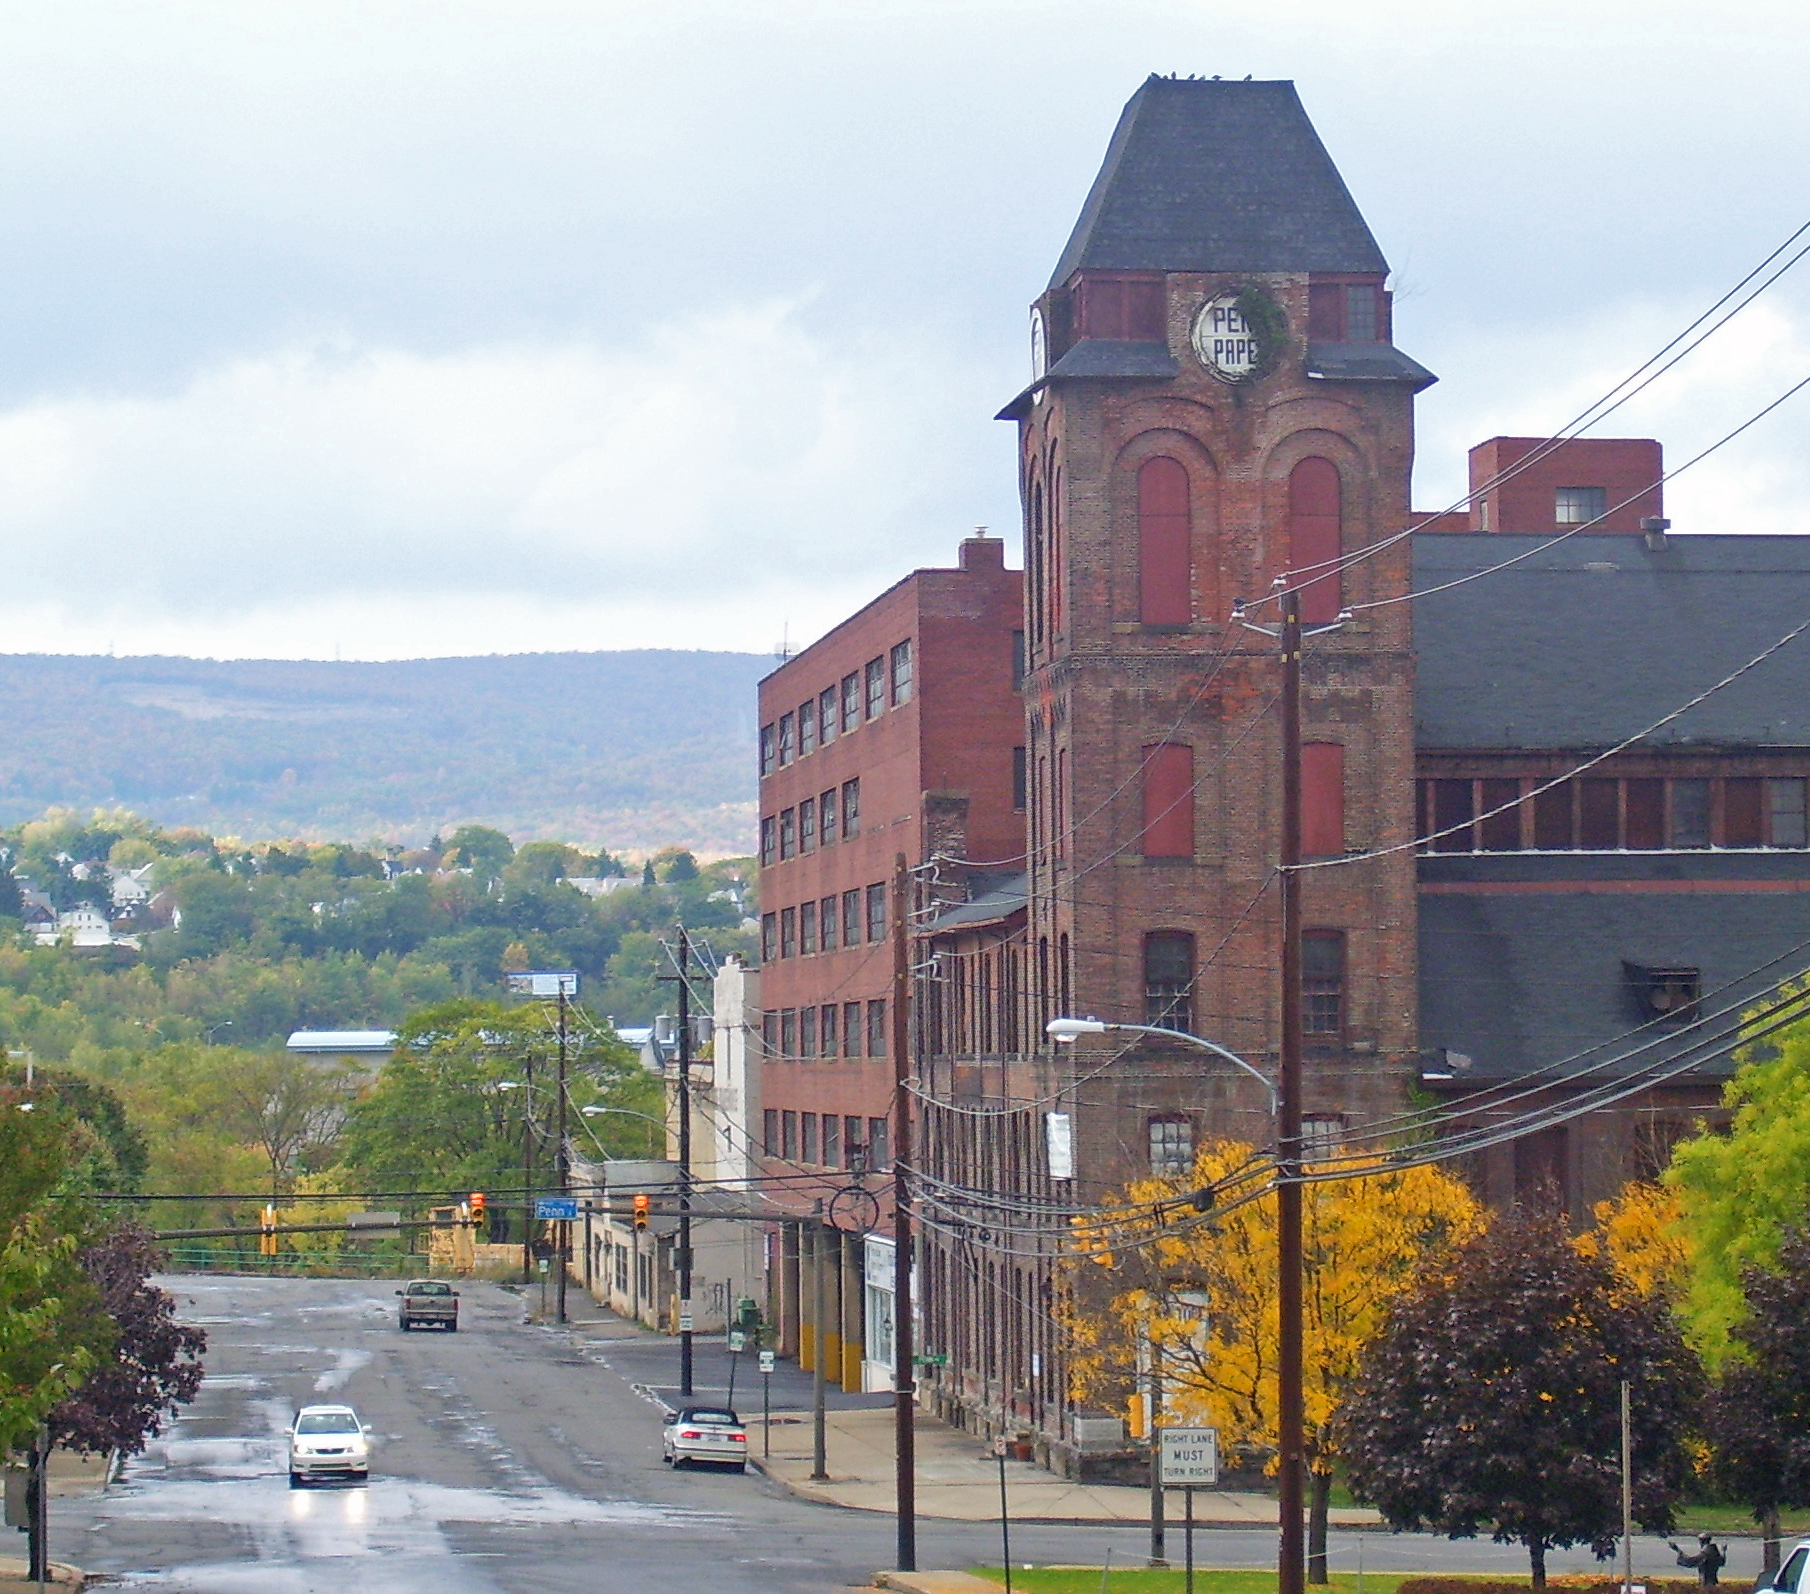 Dunmore (PA) United States  city images : ... & Supply Co Attractions 215 Vine St, Scranton, PA, United States